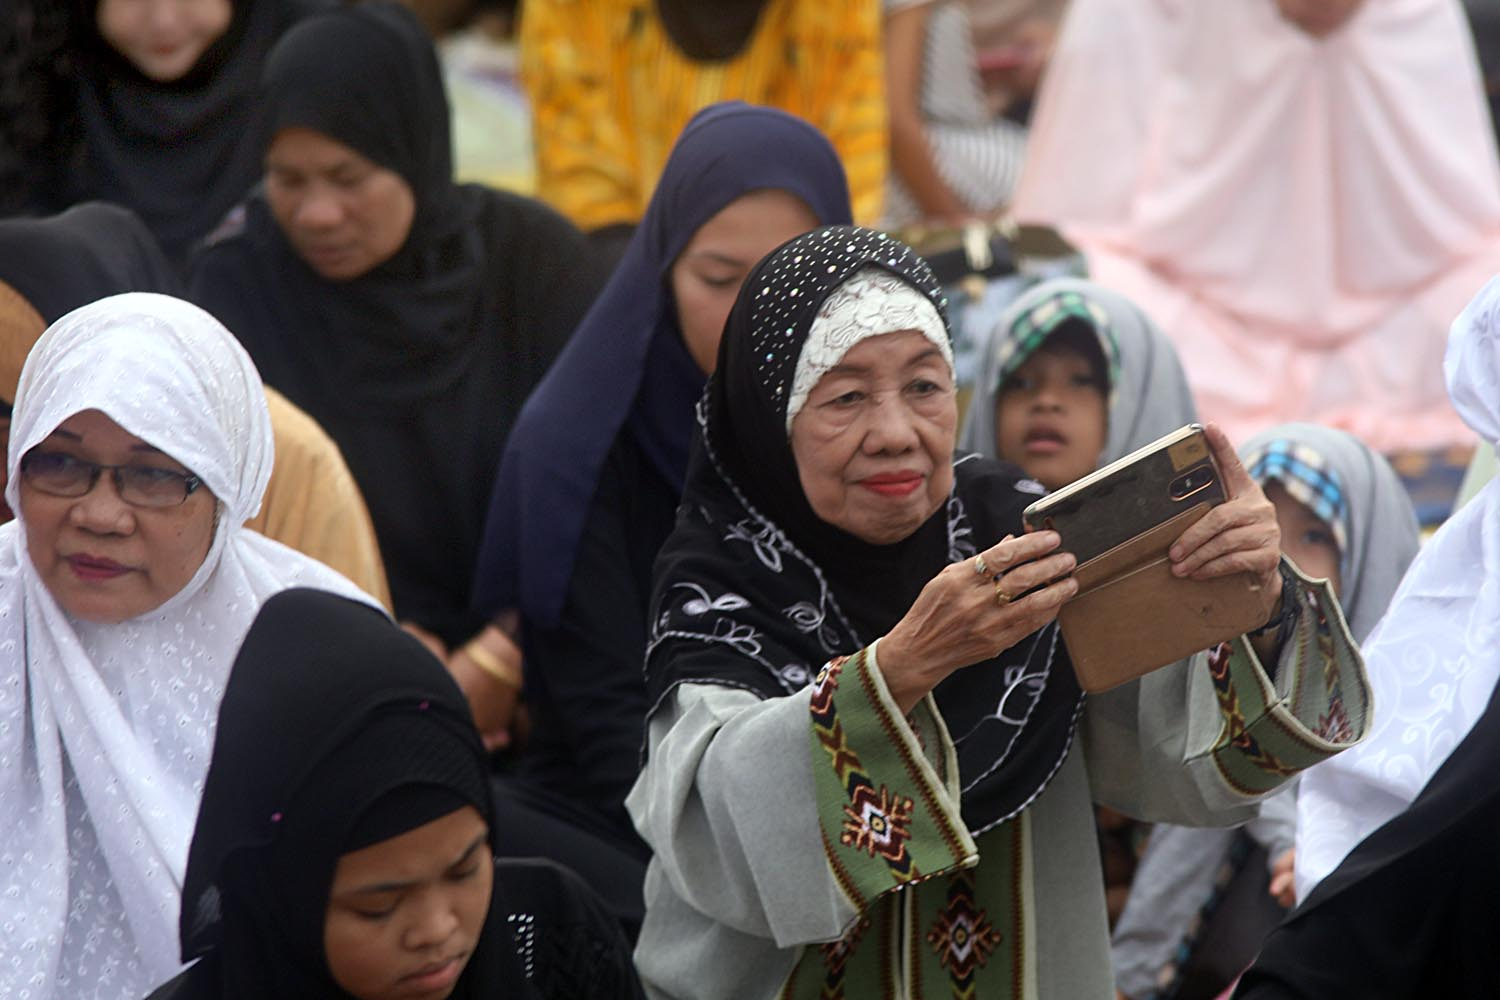 CAPTURING THE MOMENT? A woman uses her cellphone during the Eid'l Adha celebration on August 21, 2018. Photo by Darren Langit/Rappler